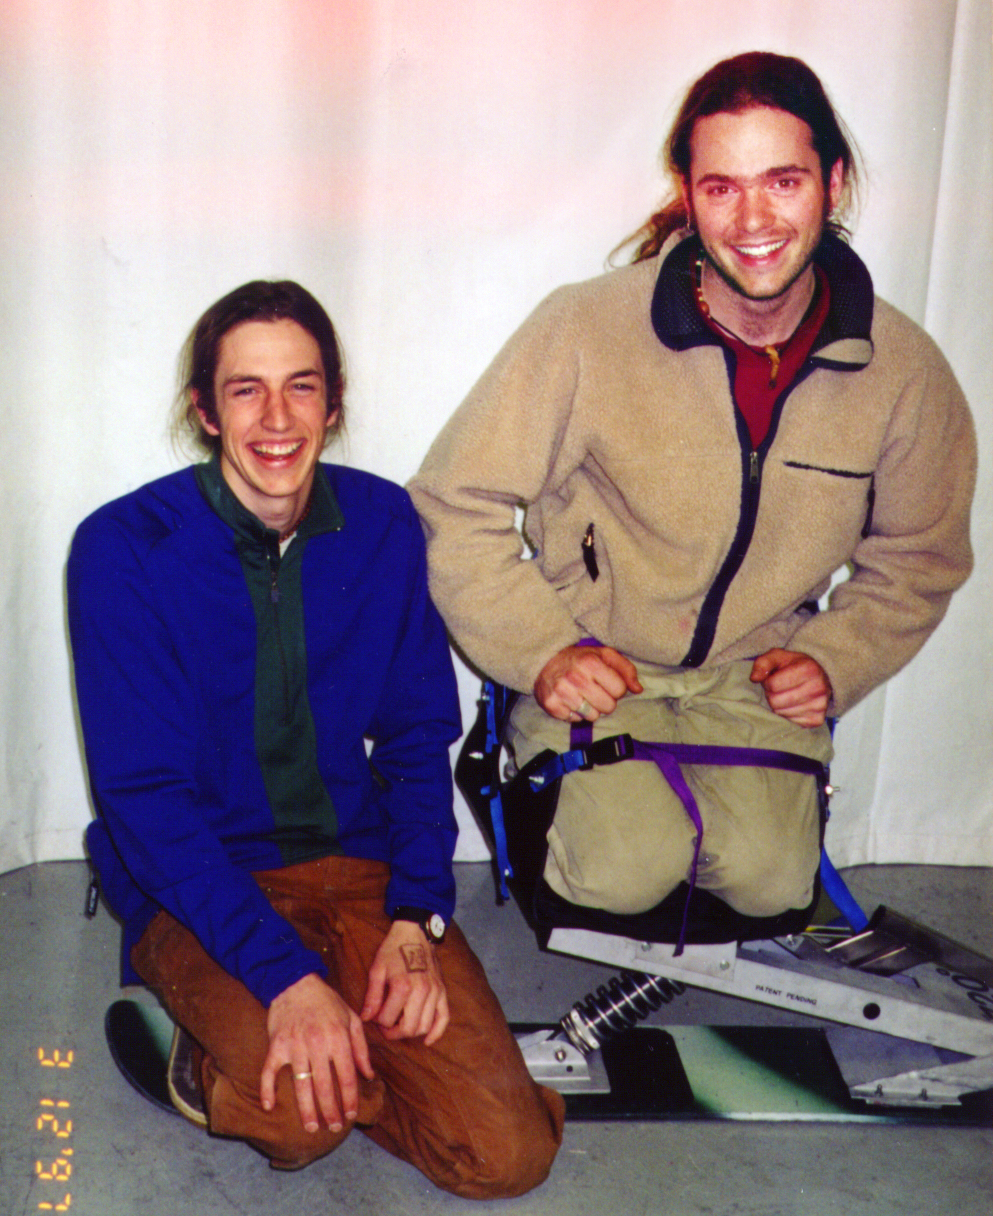 Image of Matt Capozzi and Nathan Connelly, Accessible Snowboard inventors